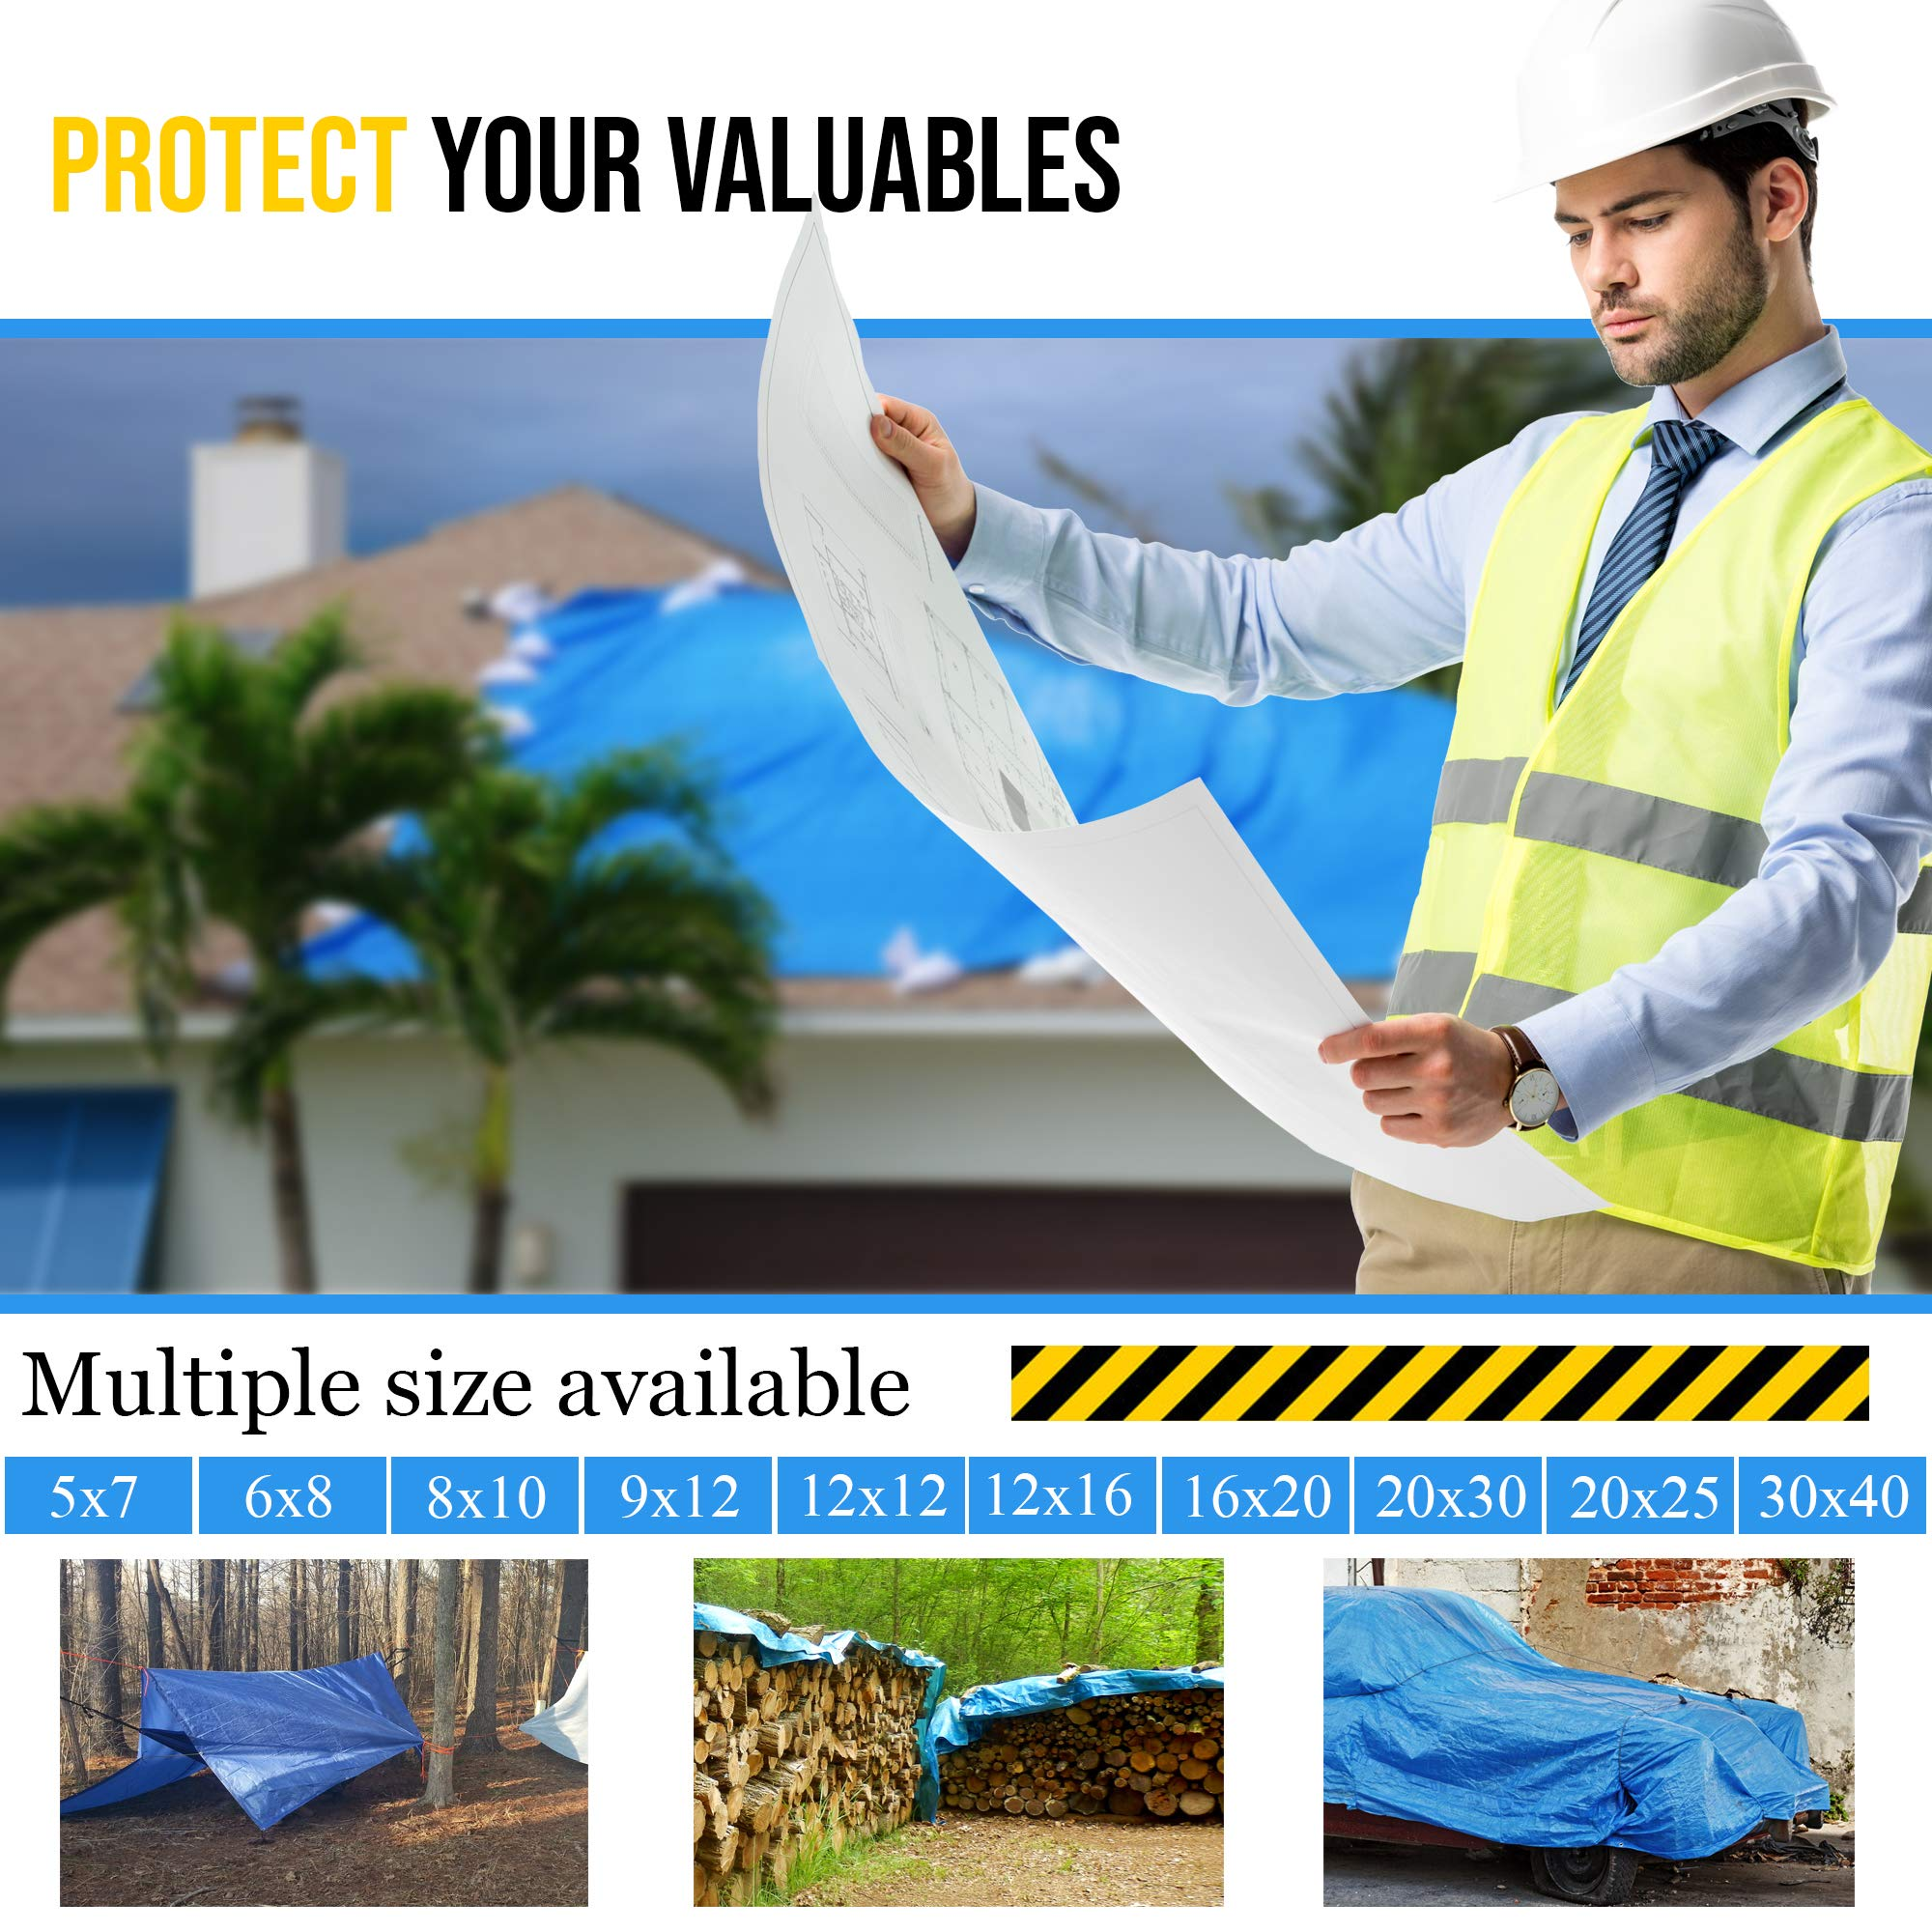 20'x25' Blue Multi-purpose 6ml Waterproof Poly Tarp Cover with Tent Shelter Camping Tarpaulin By Prime Tarps by TARPATOP (Image #5)